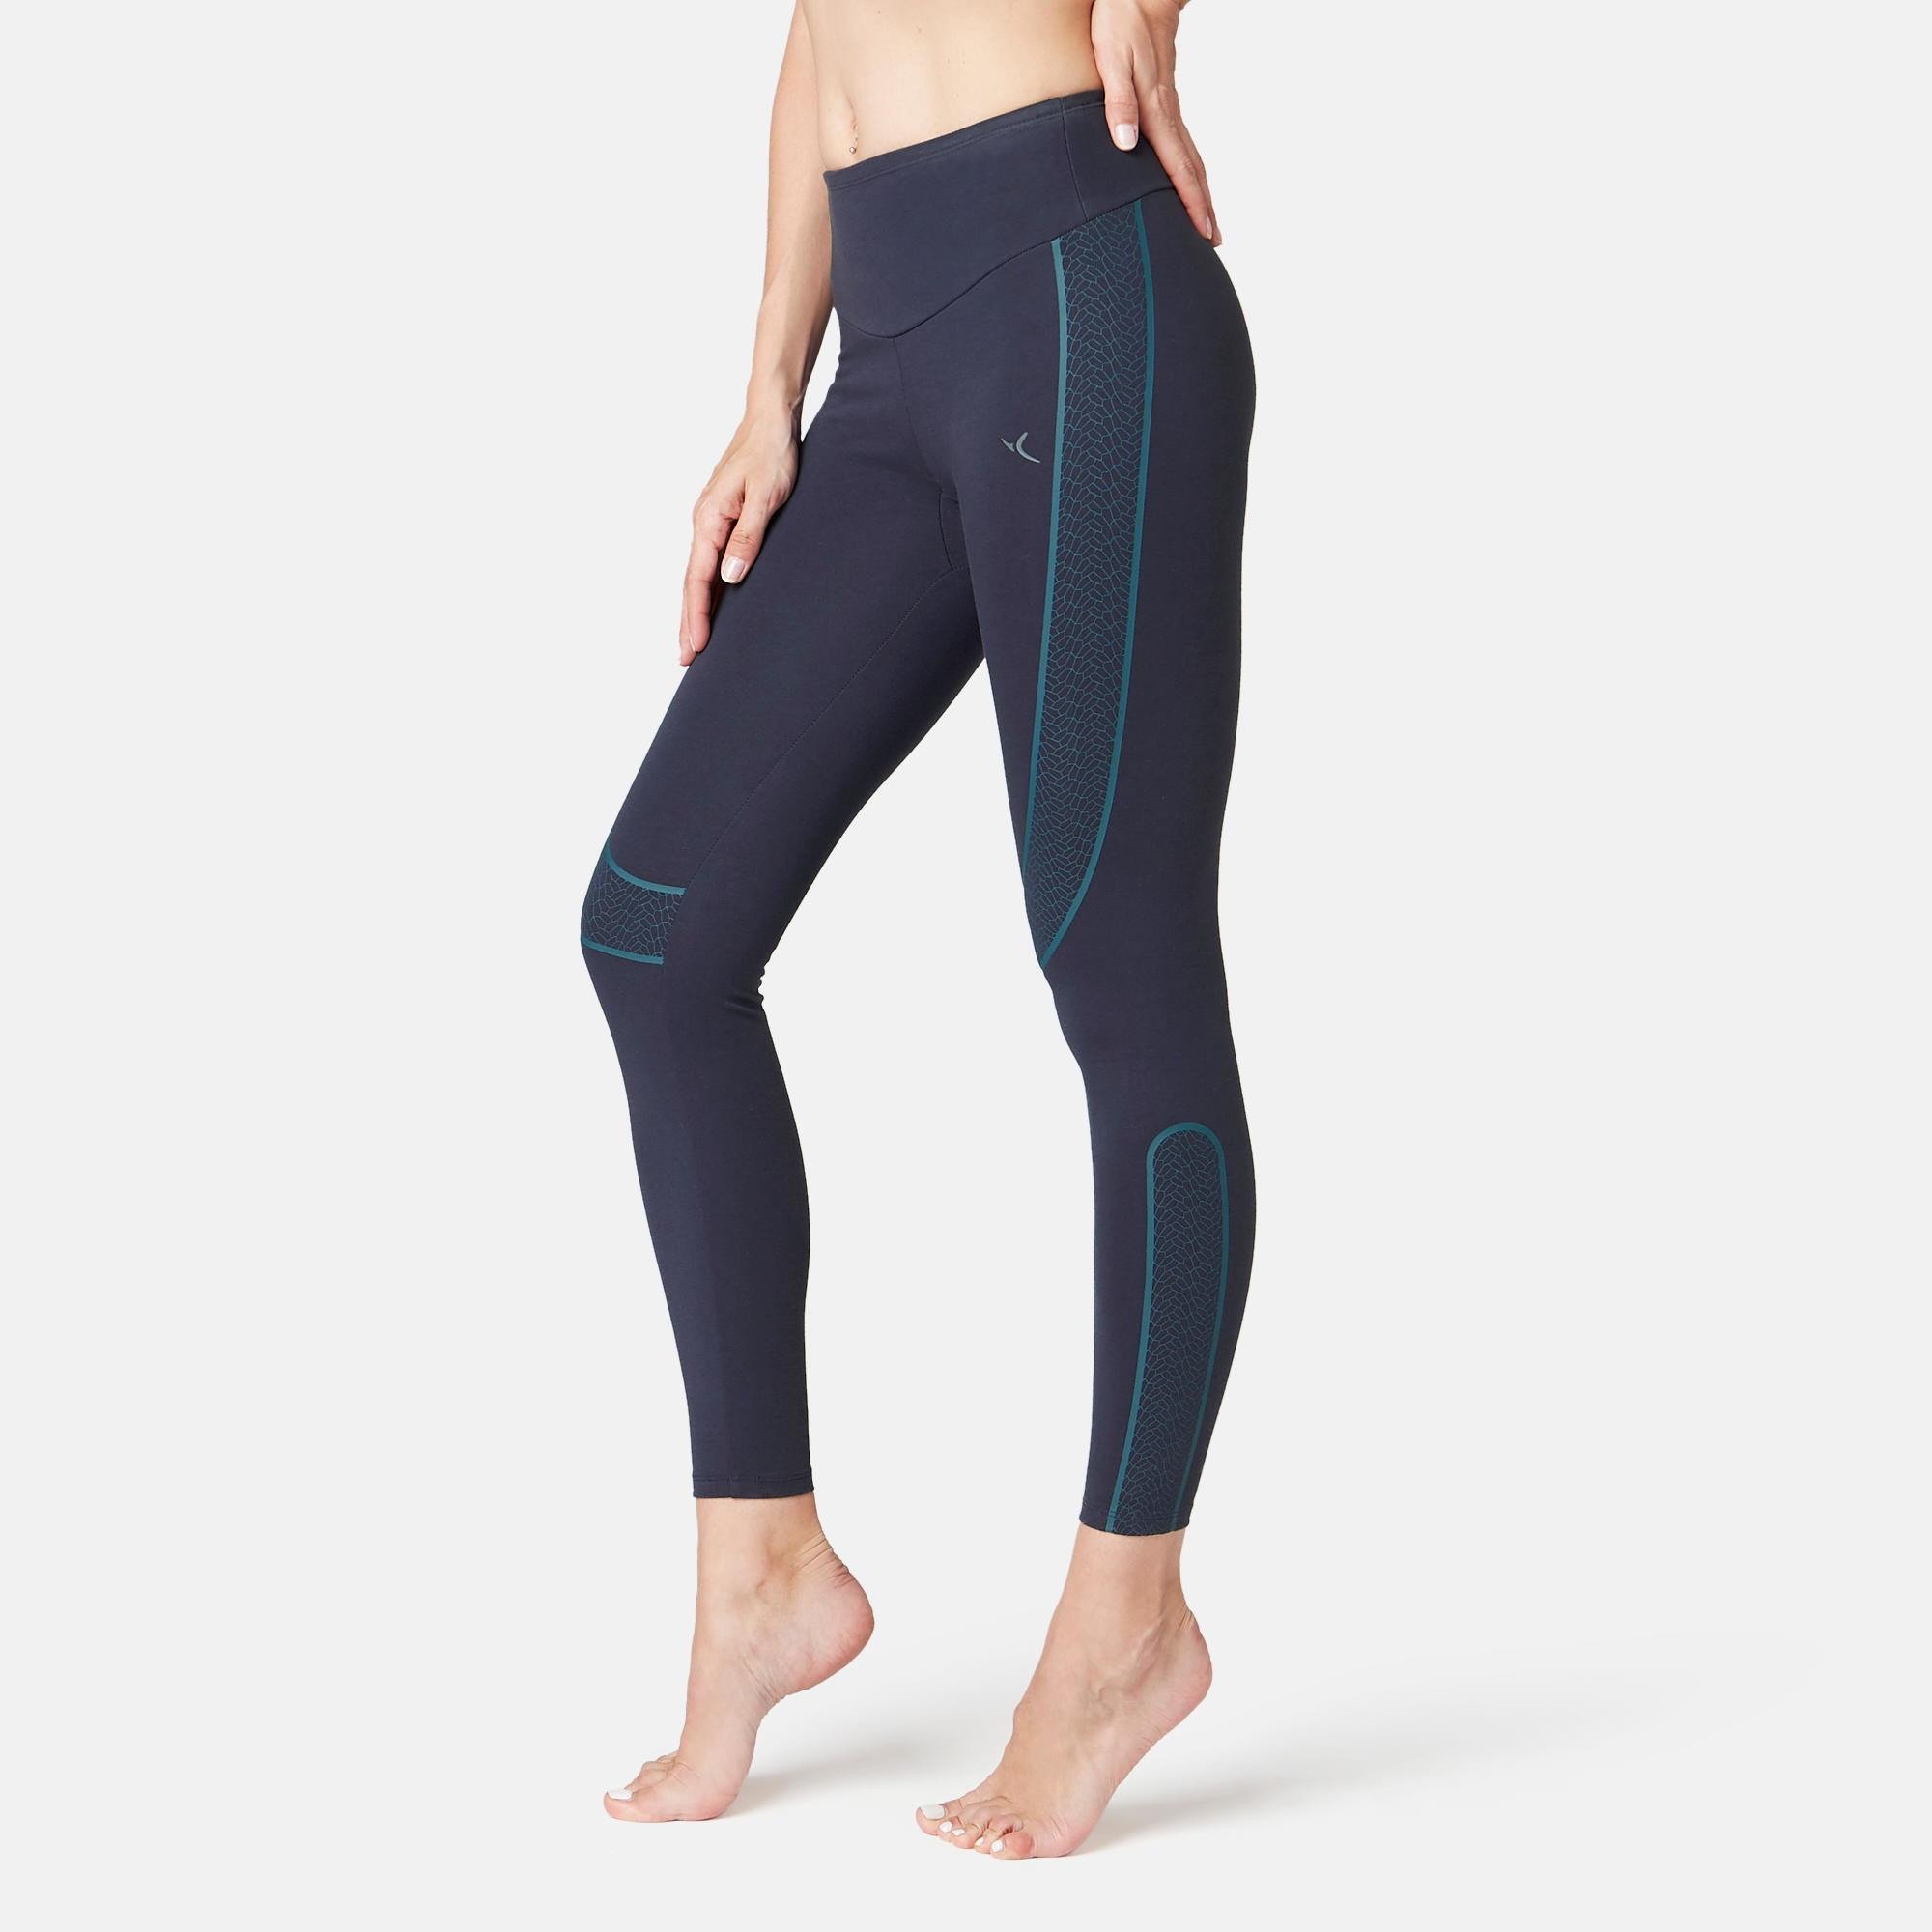 Leggings 560 Slim Pilates sanfte Gymnastik Damen marineblau | Bekleidung > Hosen > Leggings | Blau | Domyos